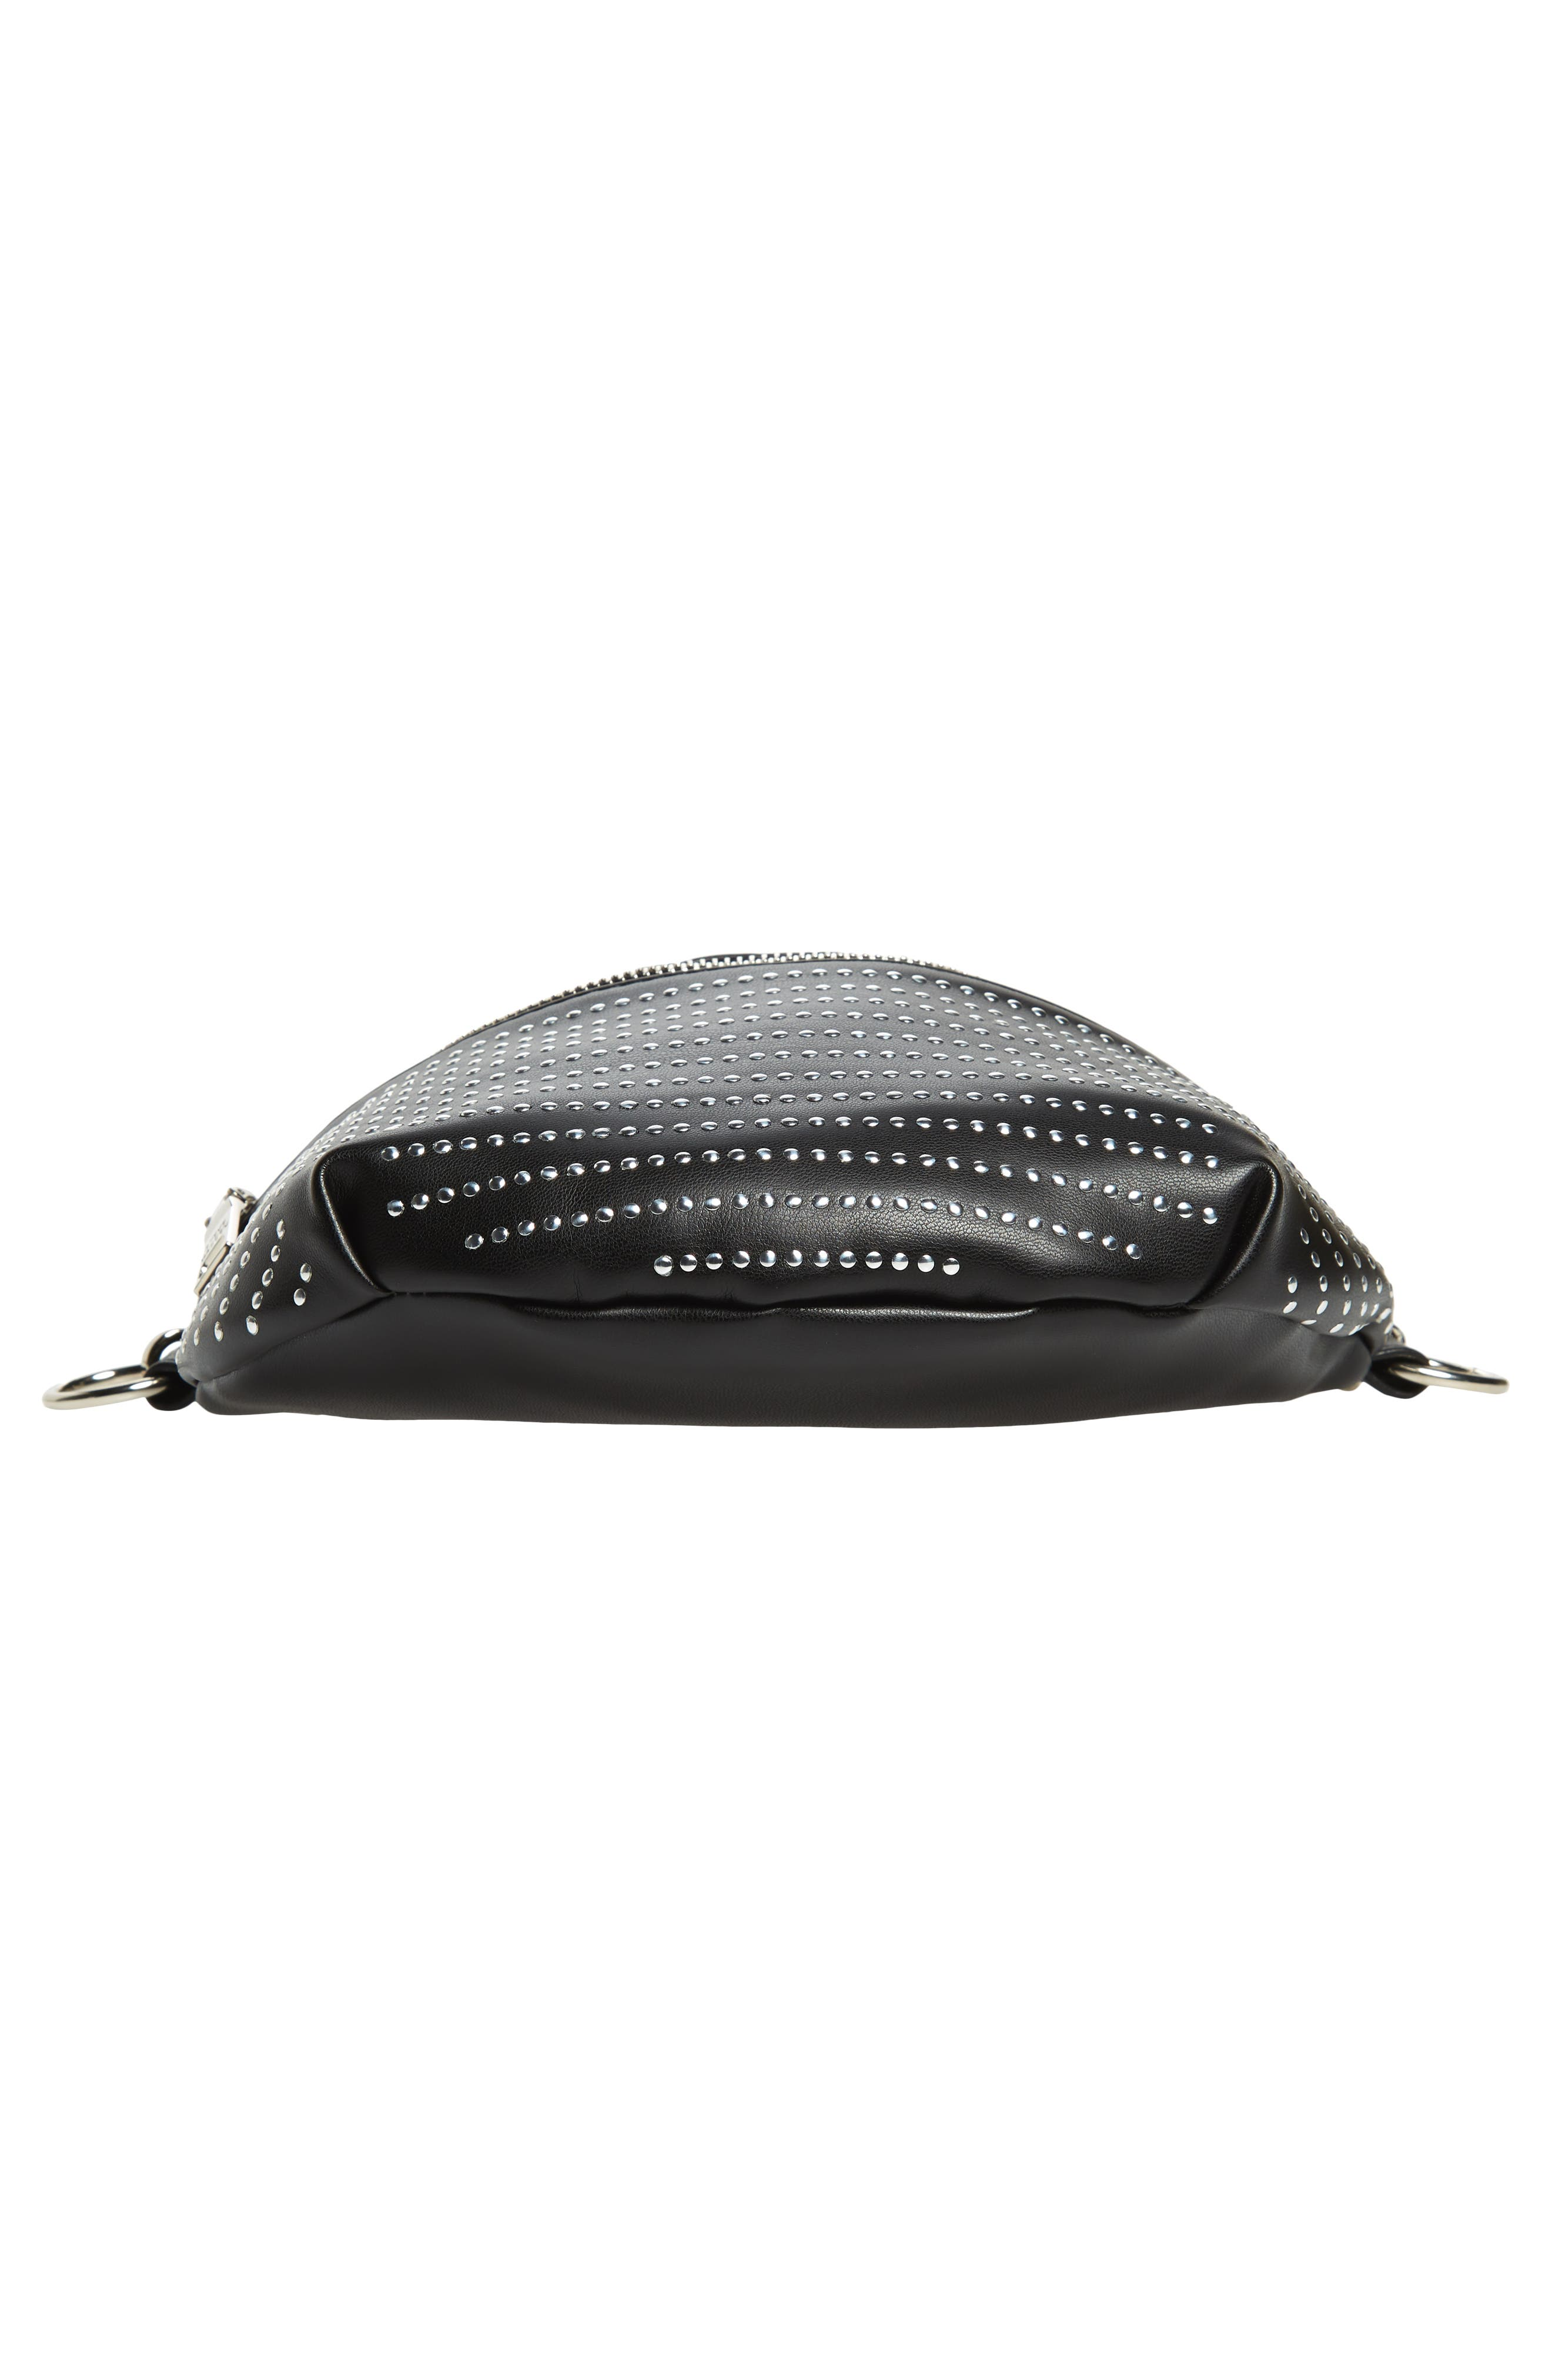 Quilted Faux Leather Fanny Pack,                             Alternate thumbnail 9, color,                             BLACK/ SILVER